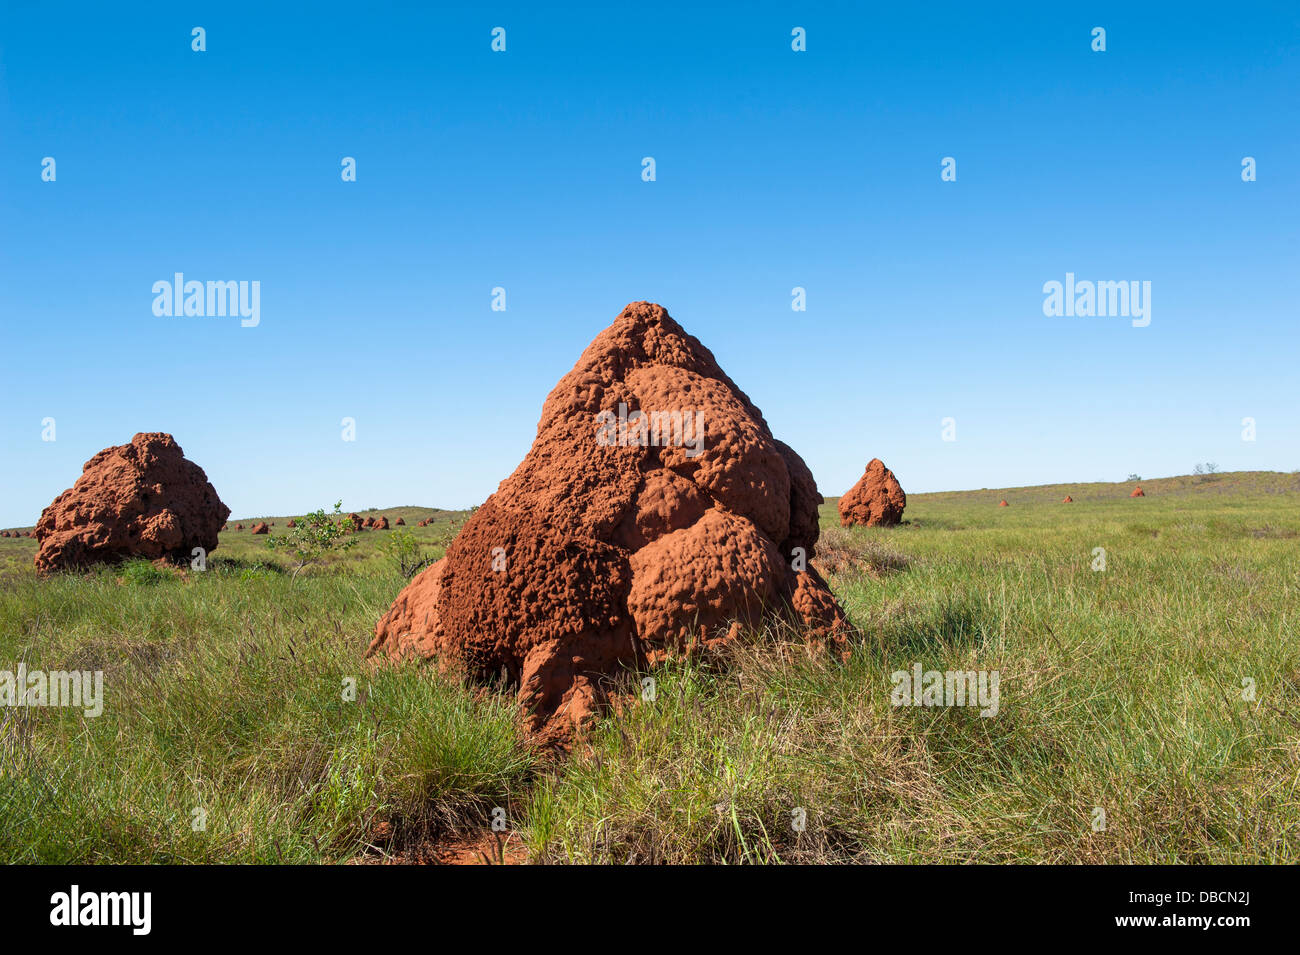 Termite mounds at the 'City of Termites' in the coastal headlands of Onslow, Western Australia - Stock Image